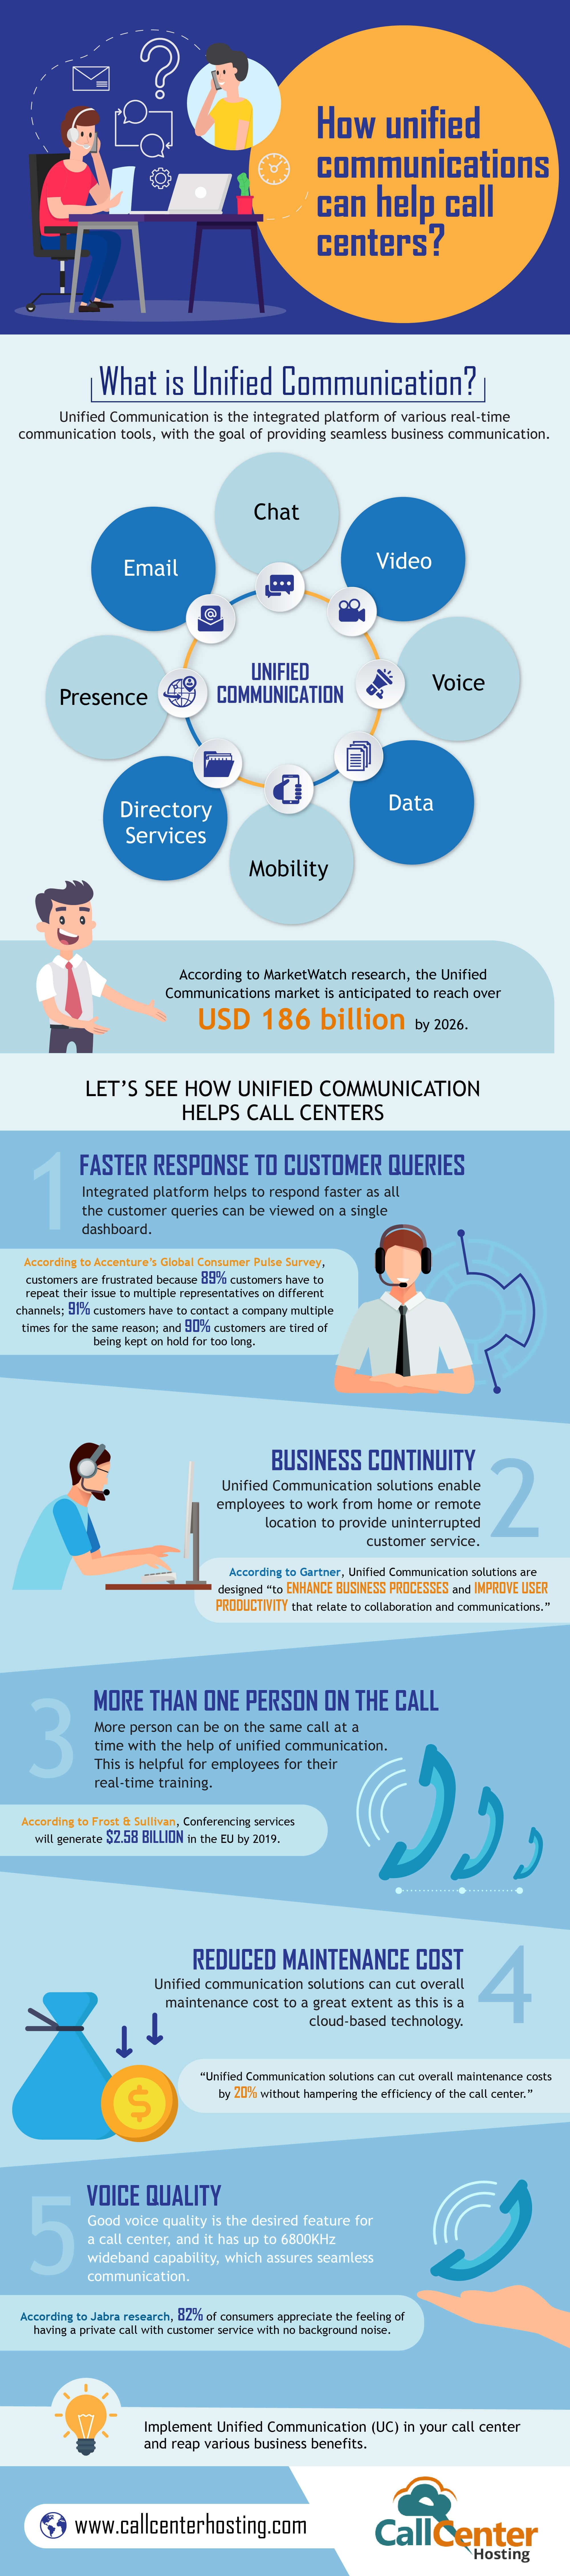 Unified Communications Can Help Call Centers